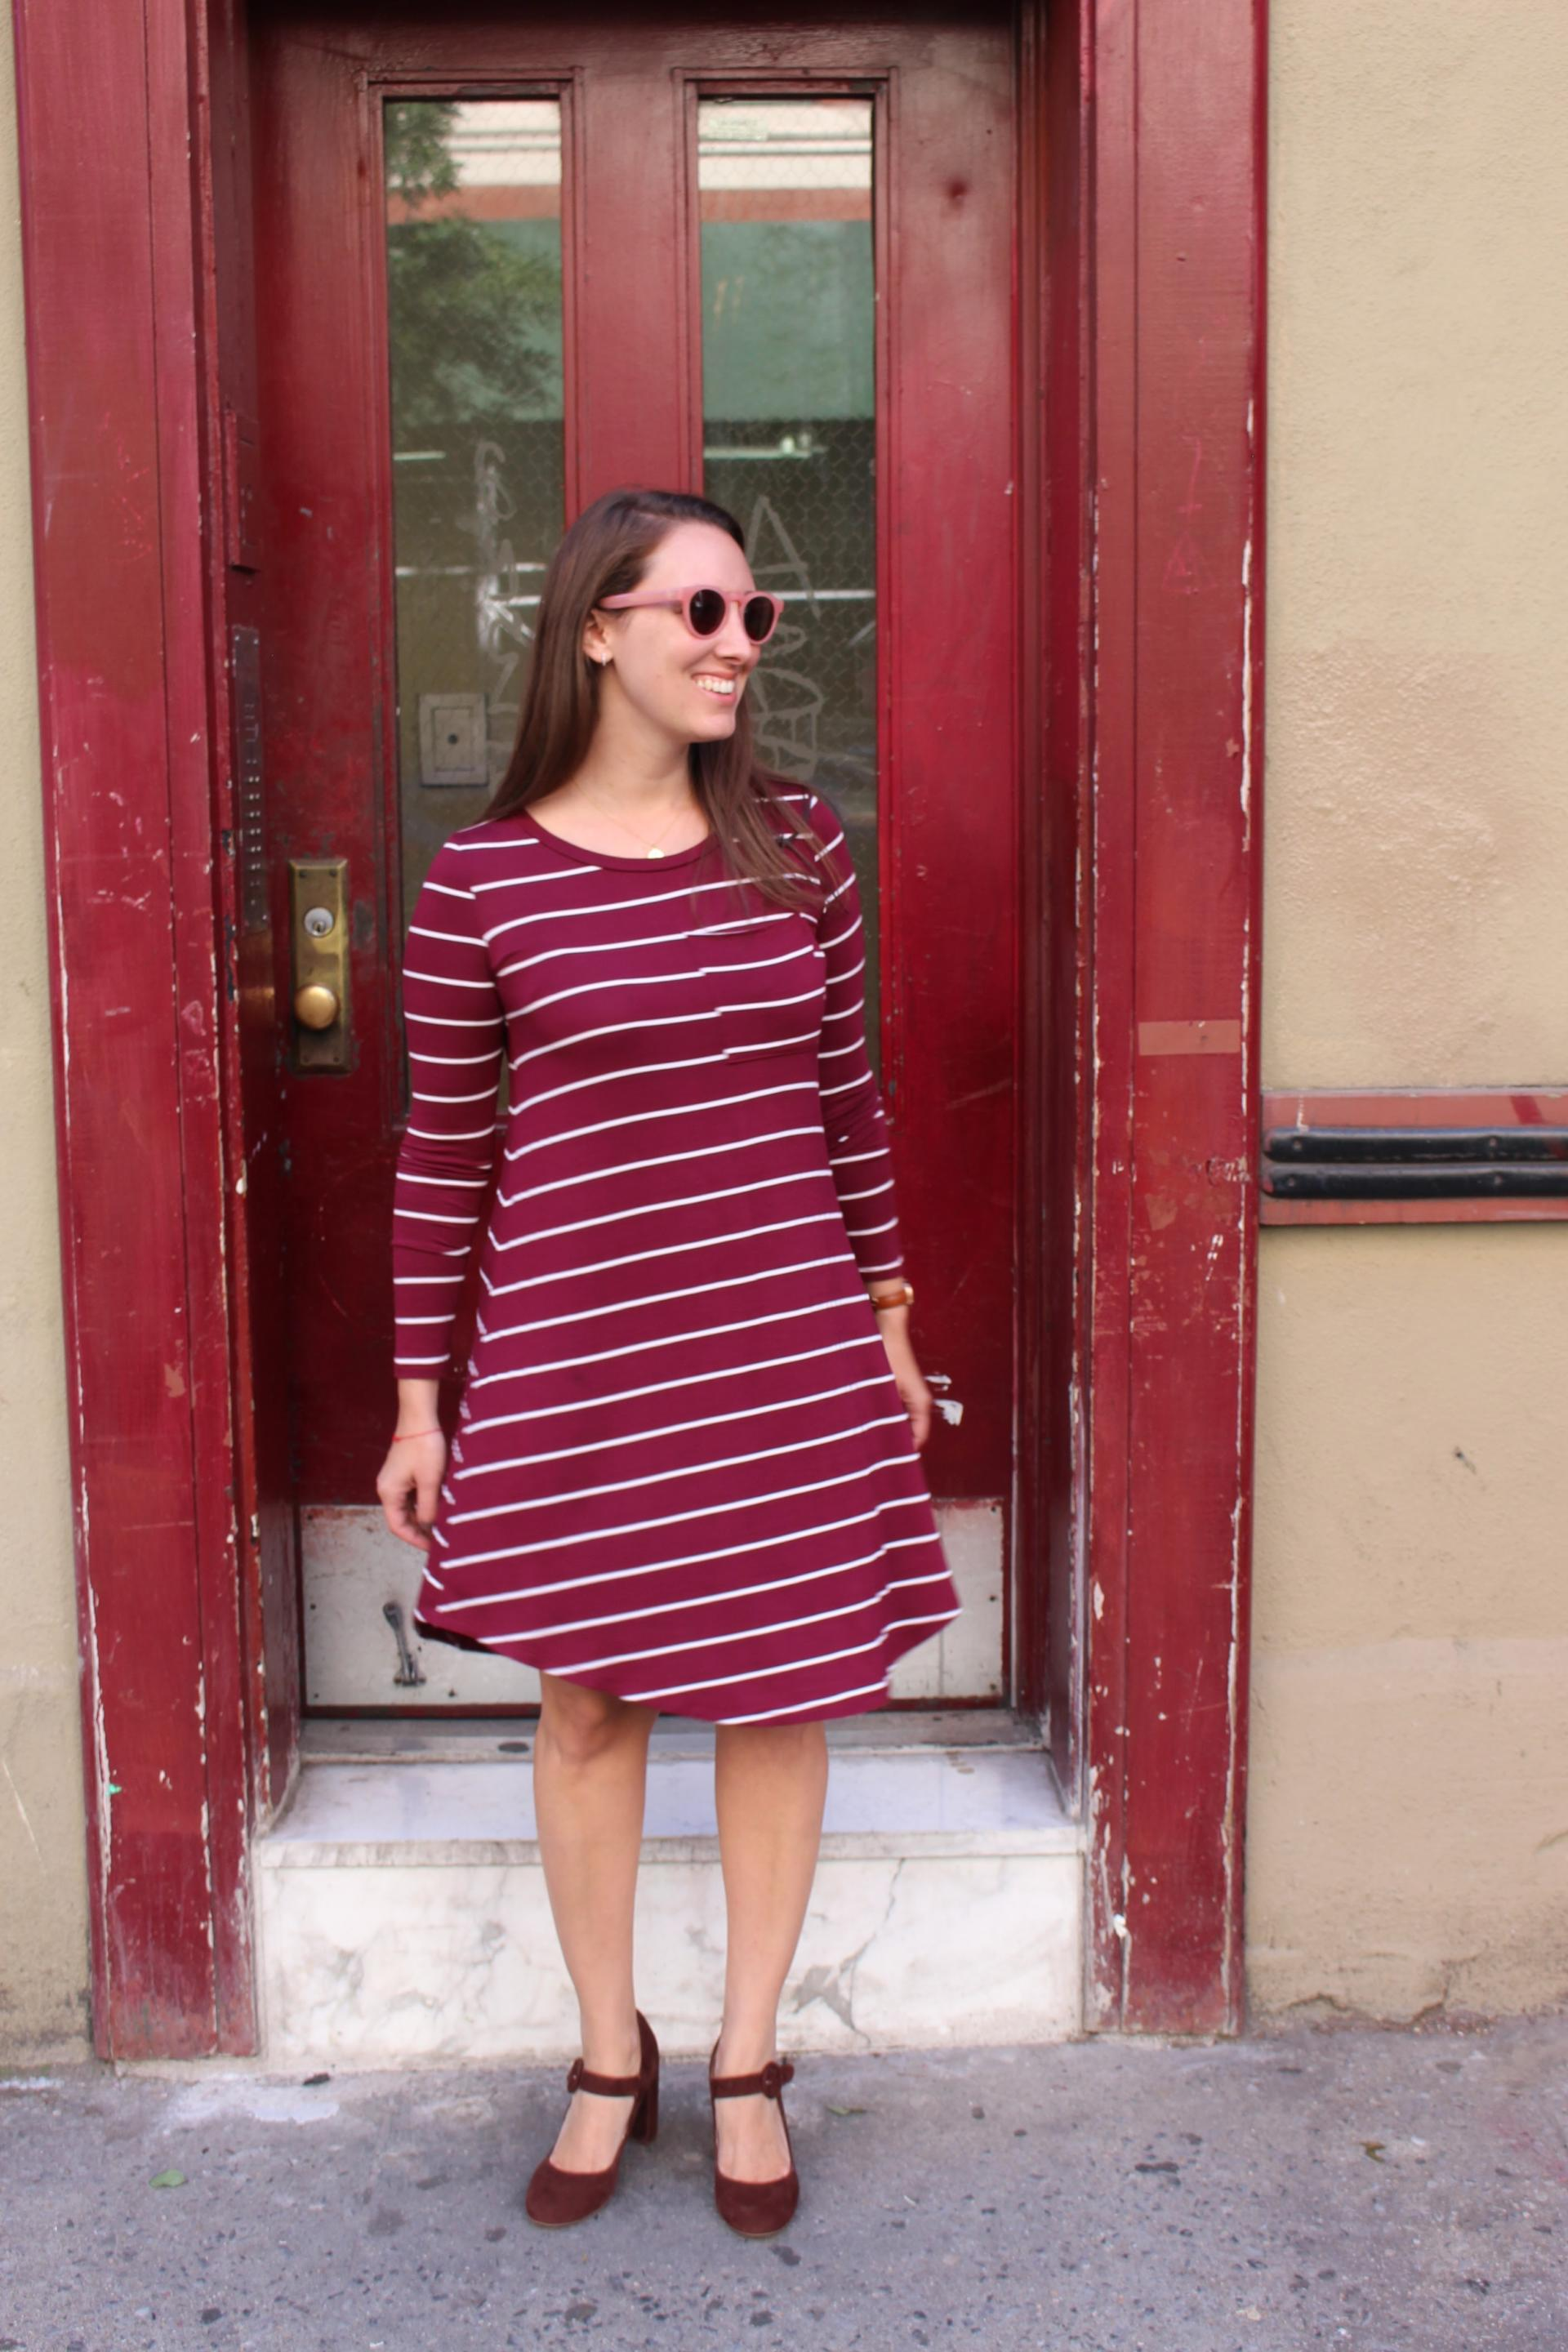 STYLE: Fall Stripes with My Sister's Closet Boutique